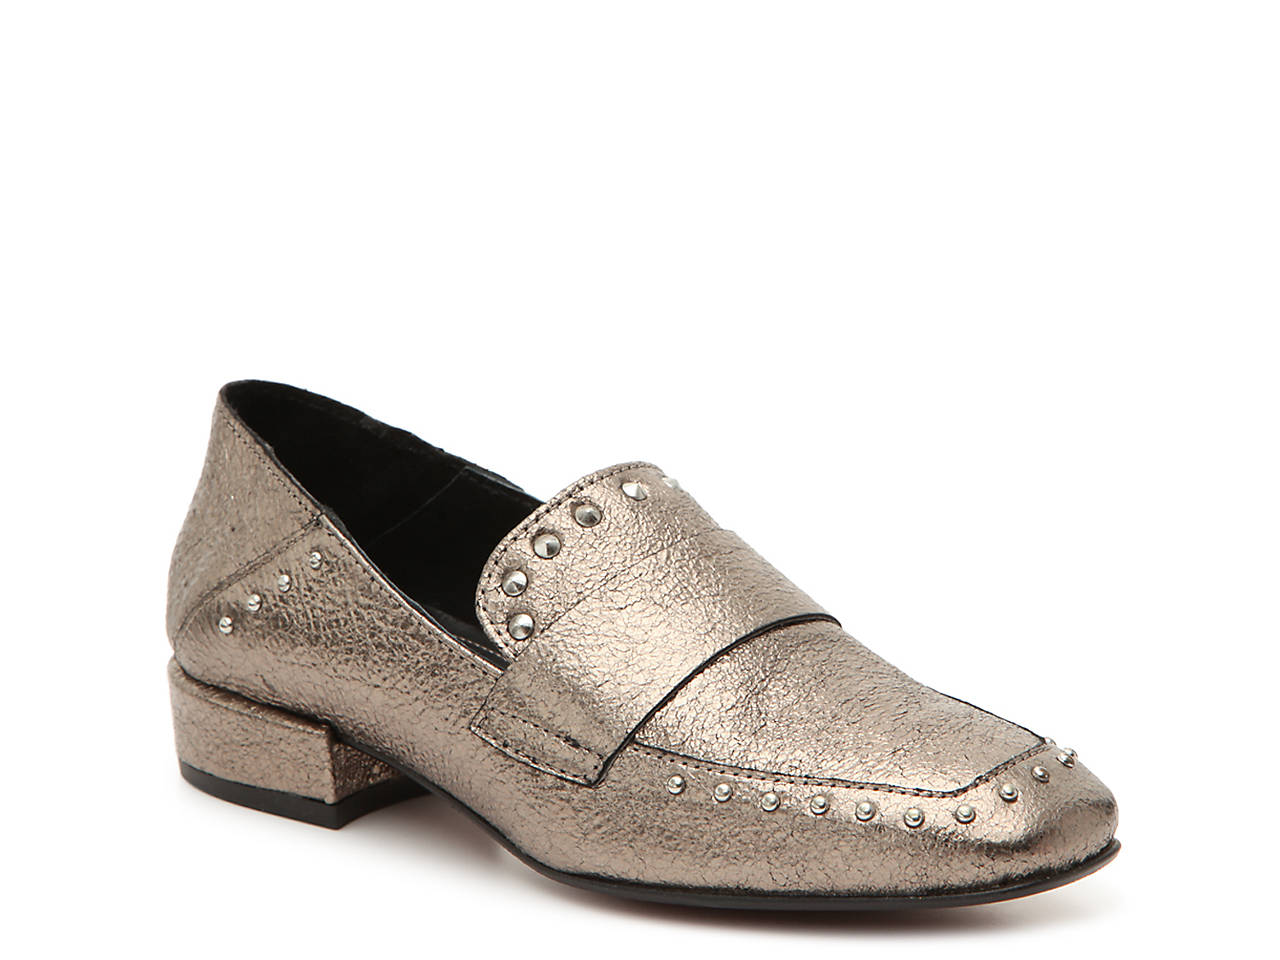 5dcdad98db4 Kenneth Cole New York Bowan 2 Loafer Women s Shoes